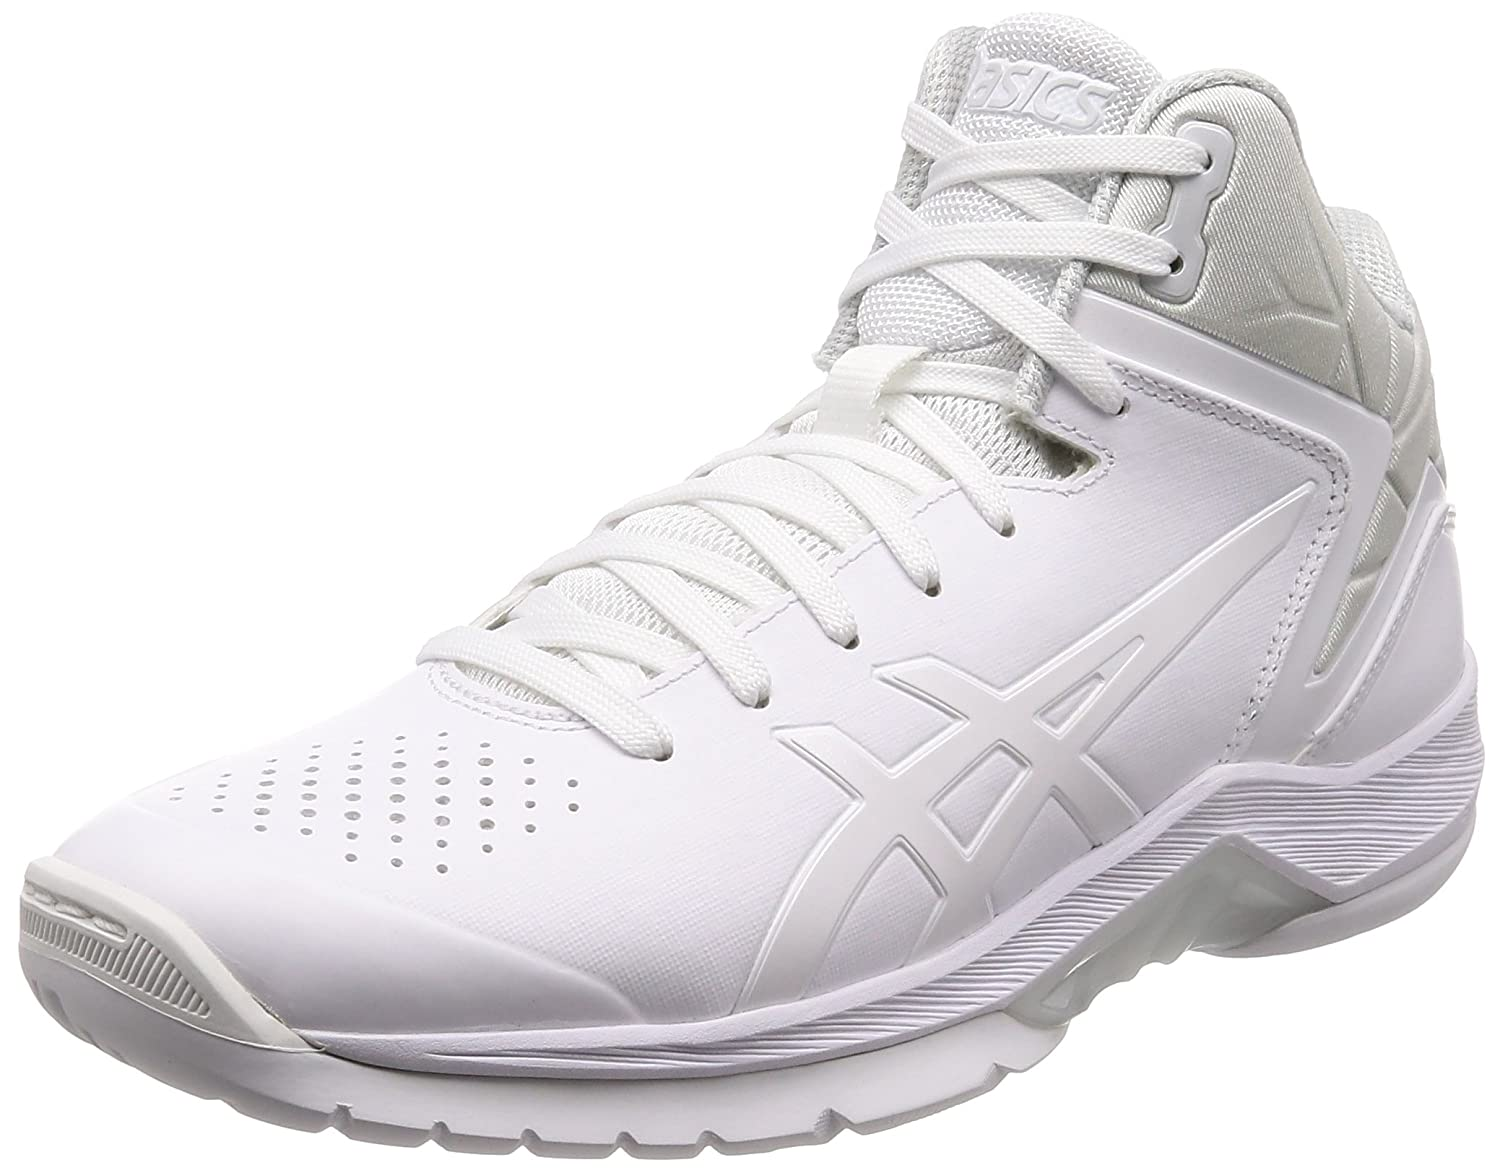 asic basketball shoes off 66% - www